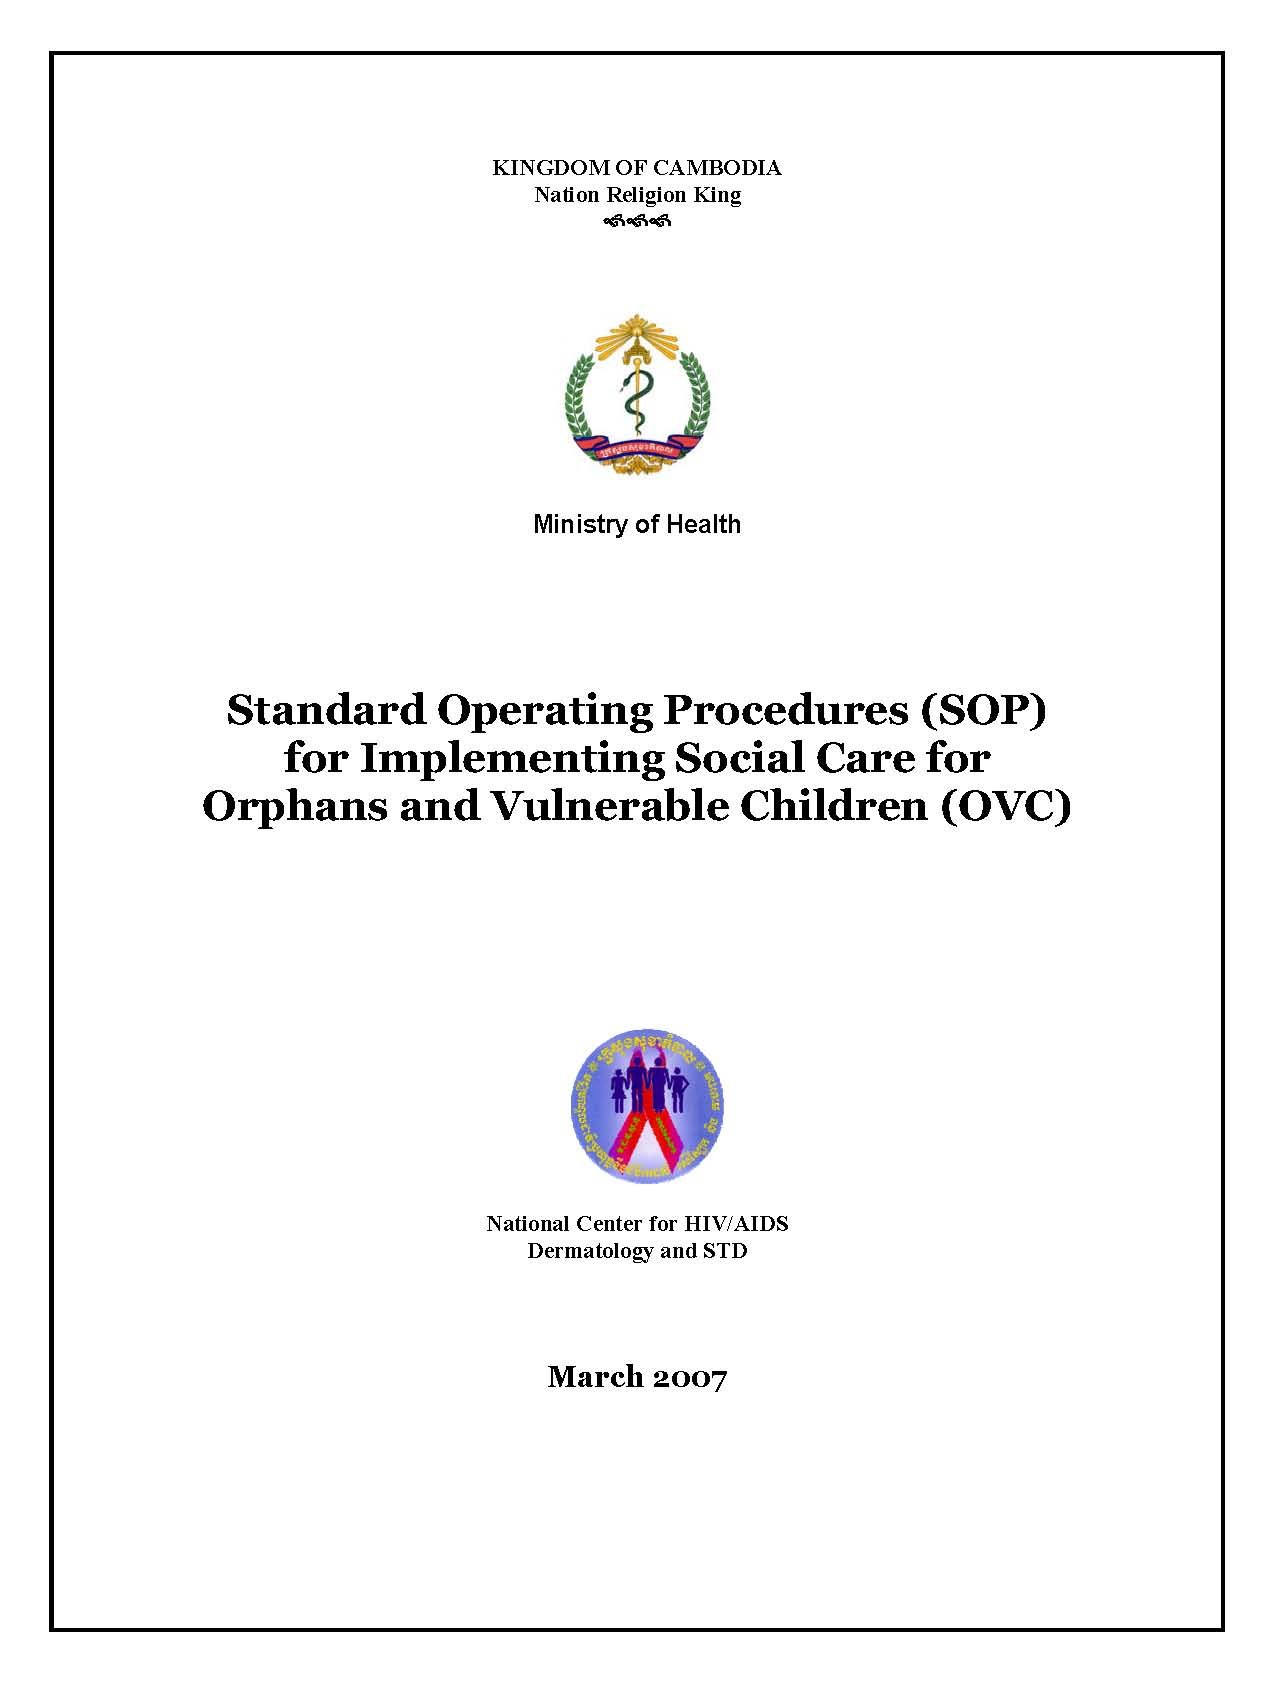 SOP for Implementing Social Care OVC